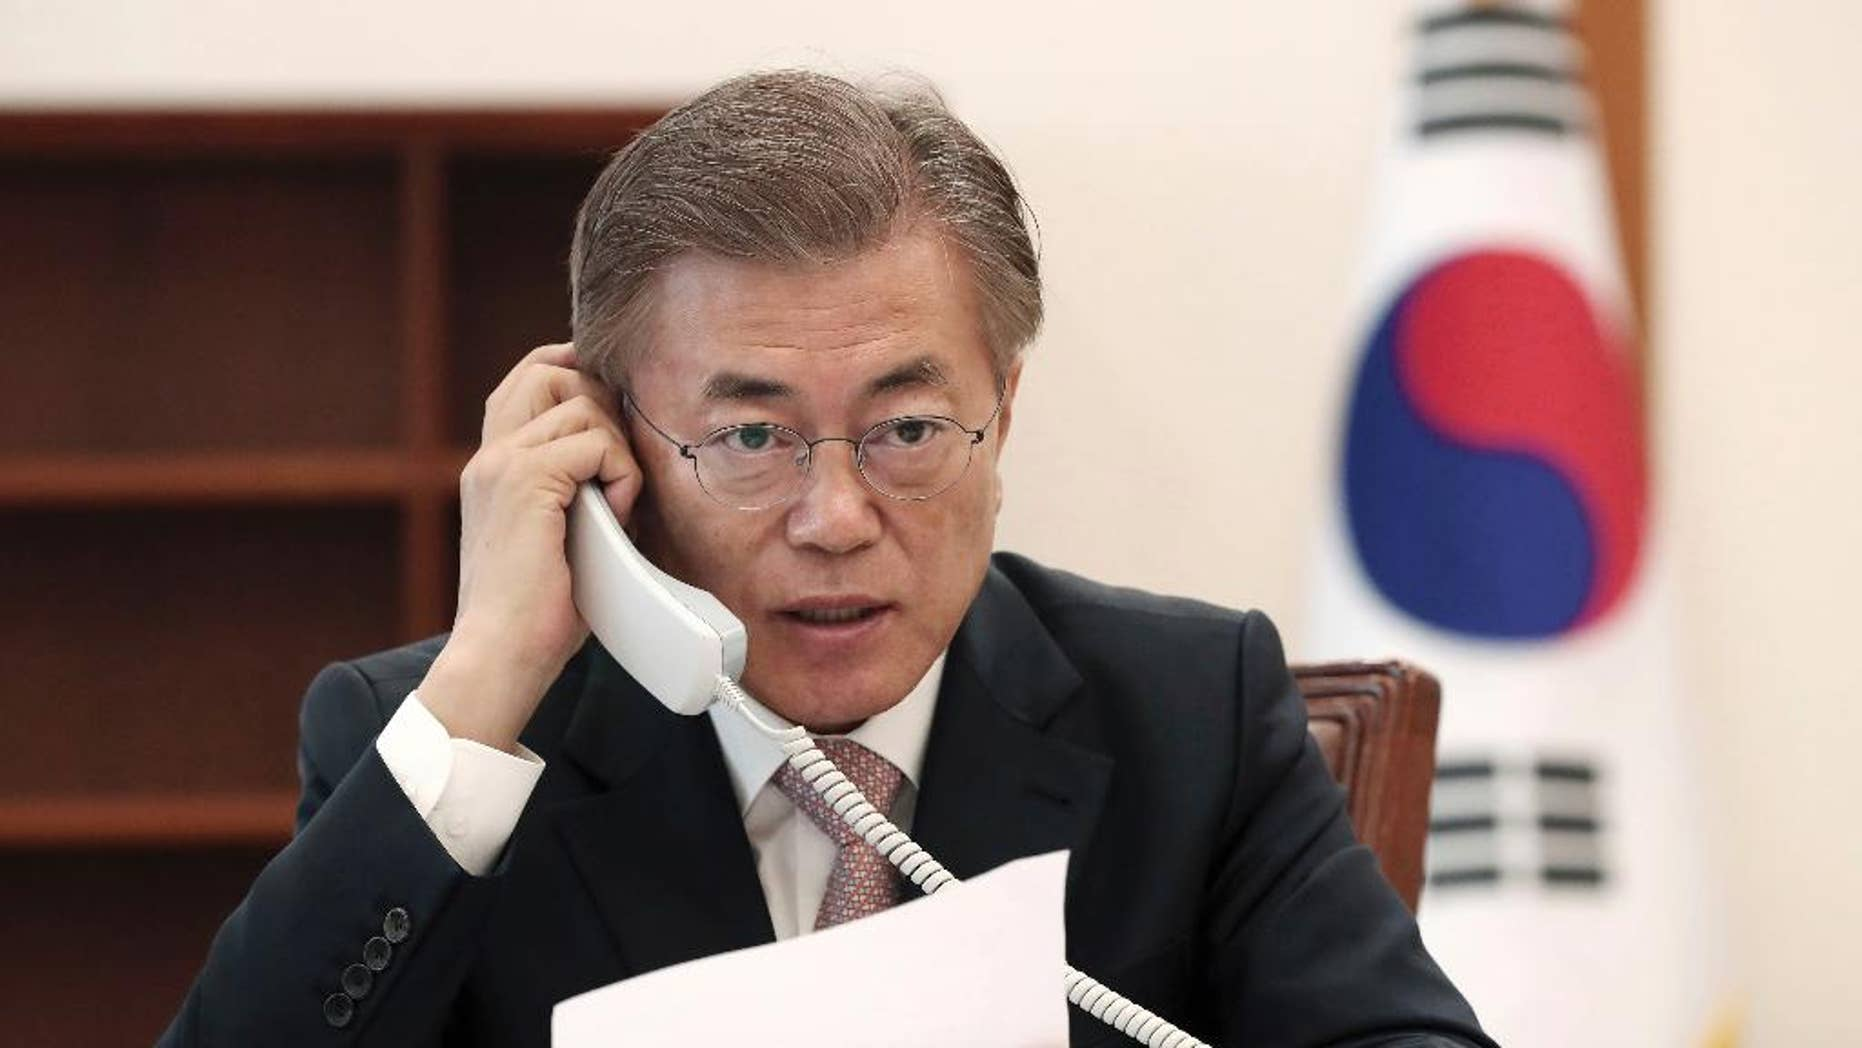 South Korean President Moon Jae-in talks on the phone with Chinese President Xi Jinping at the presidential Blue House in Seoul, South Korea, Thursday, May 11, 2017. Moon told his Chinese counterpart that he plans to send a special delegation to Beijing for talks on North Korea and a contentious U.S. missile-defense shield, Seoul officials said Thursday. (Yonhap via AP)